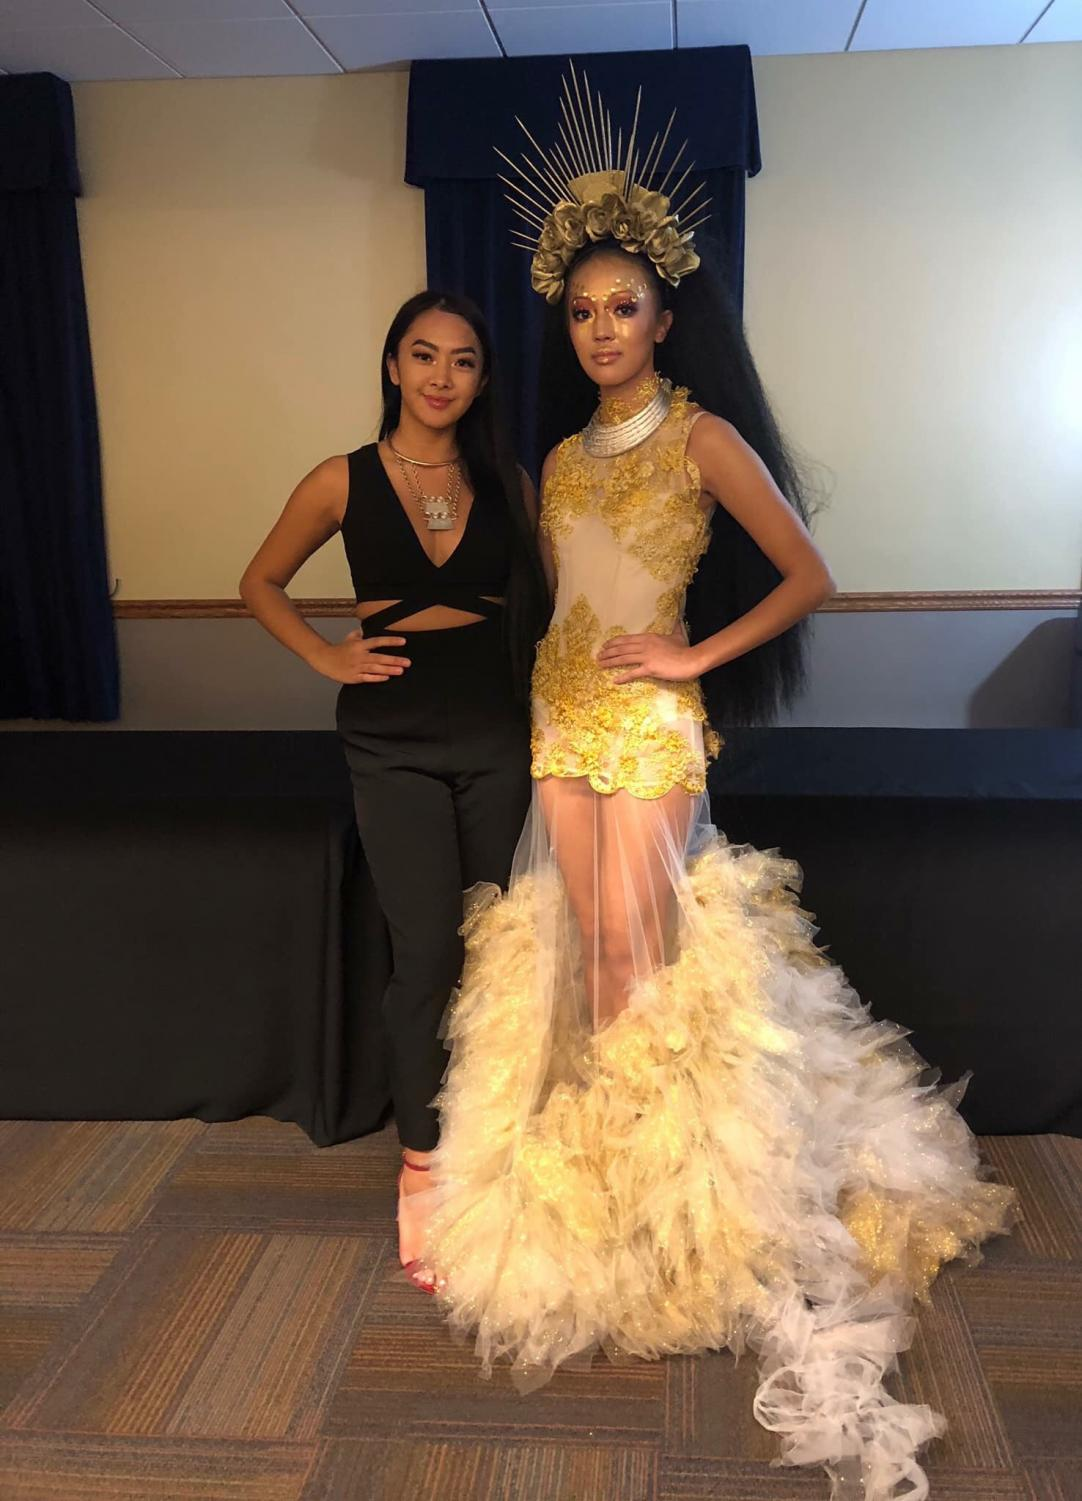 Kylie Xiong (left) and Kayla Xiong (right) together after the Stylus Big Show on November 10, 2018, Kylie was supporting Kayla as she walked down the aisles that Saturday evening.